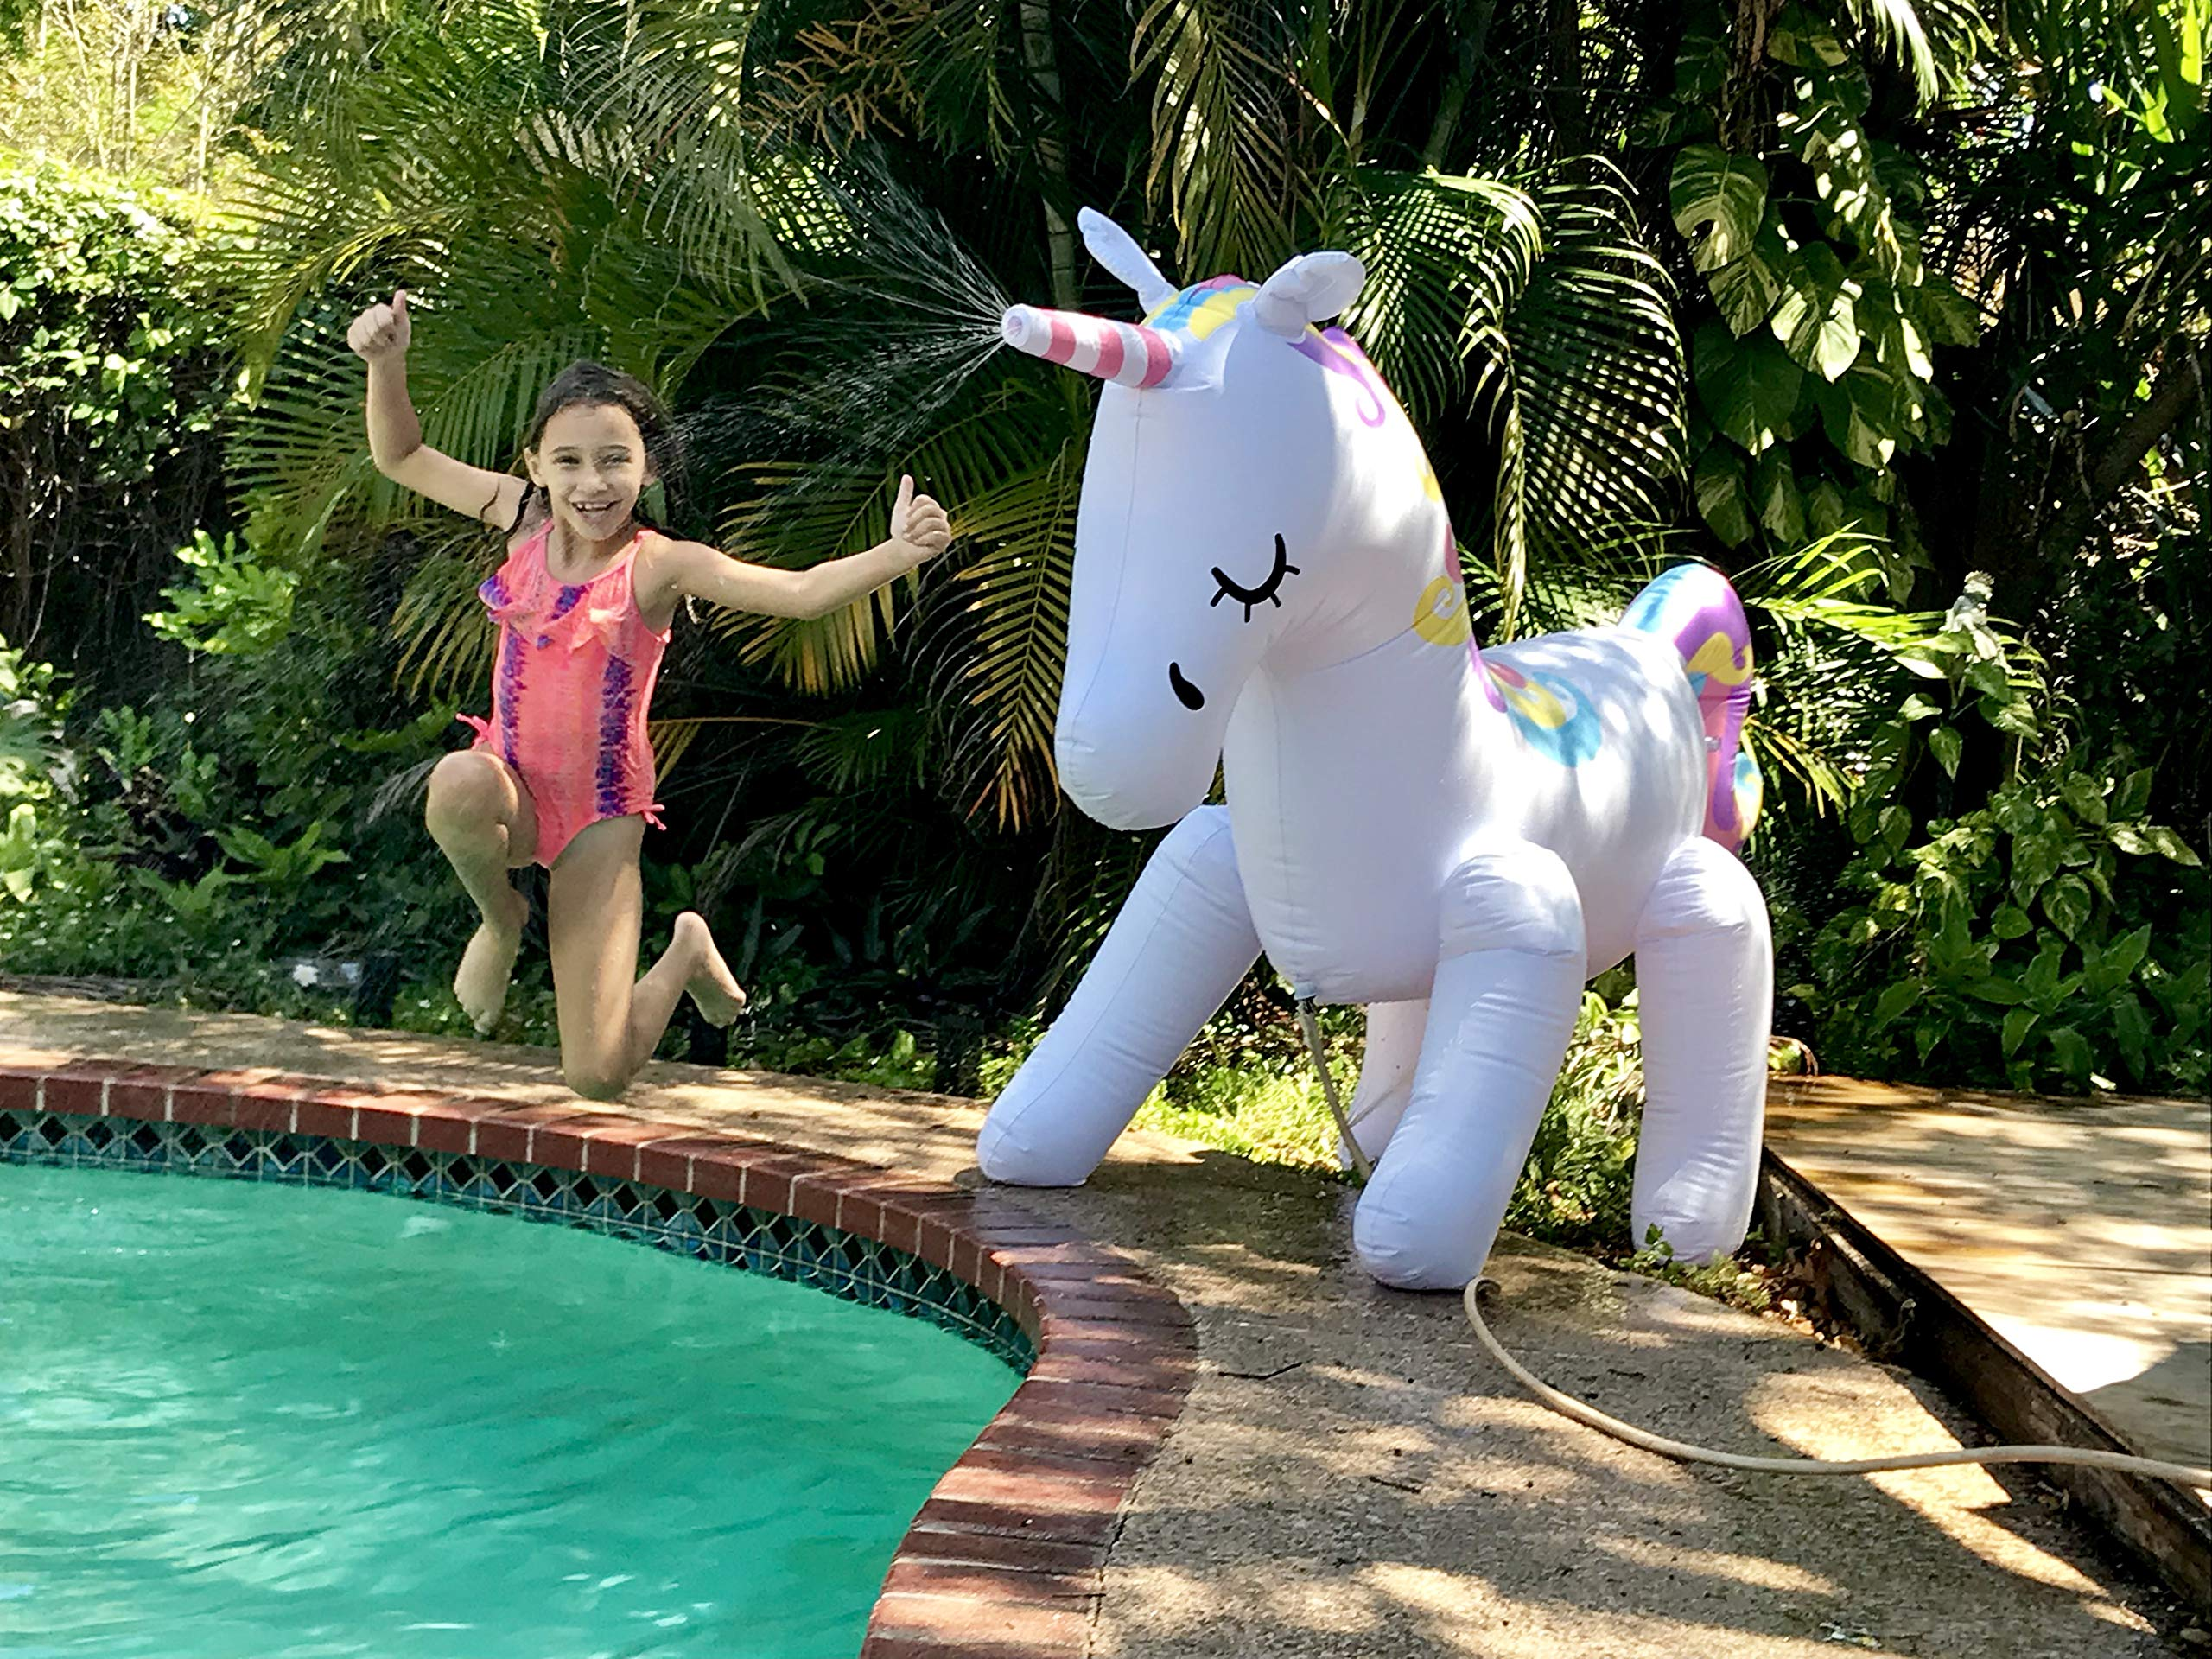 THE ORIGINAL UNICORN SPRINKLER Toy - Giant Inflatable Unicorn Sprinkler for Kids Adults - Great Outdoor Birthday Party… 5